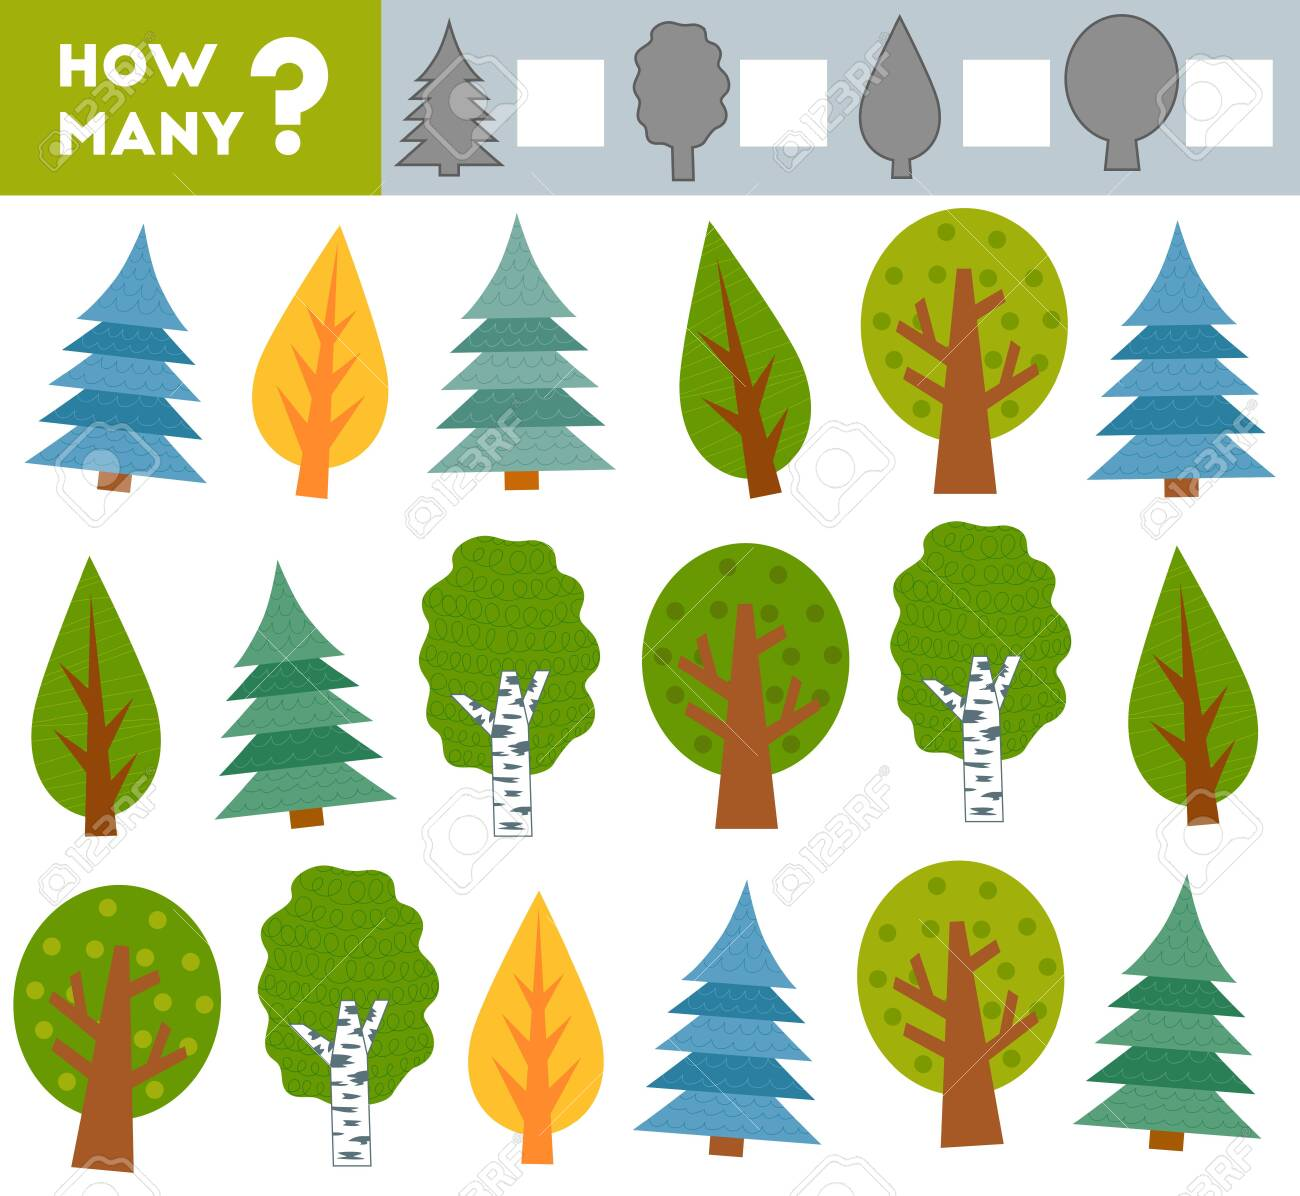 Counting Game for Preschool Children. Educational a mathematical game. Count how many trees and write the result! - 148569055